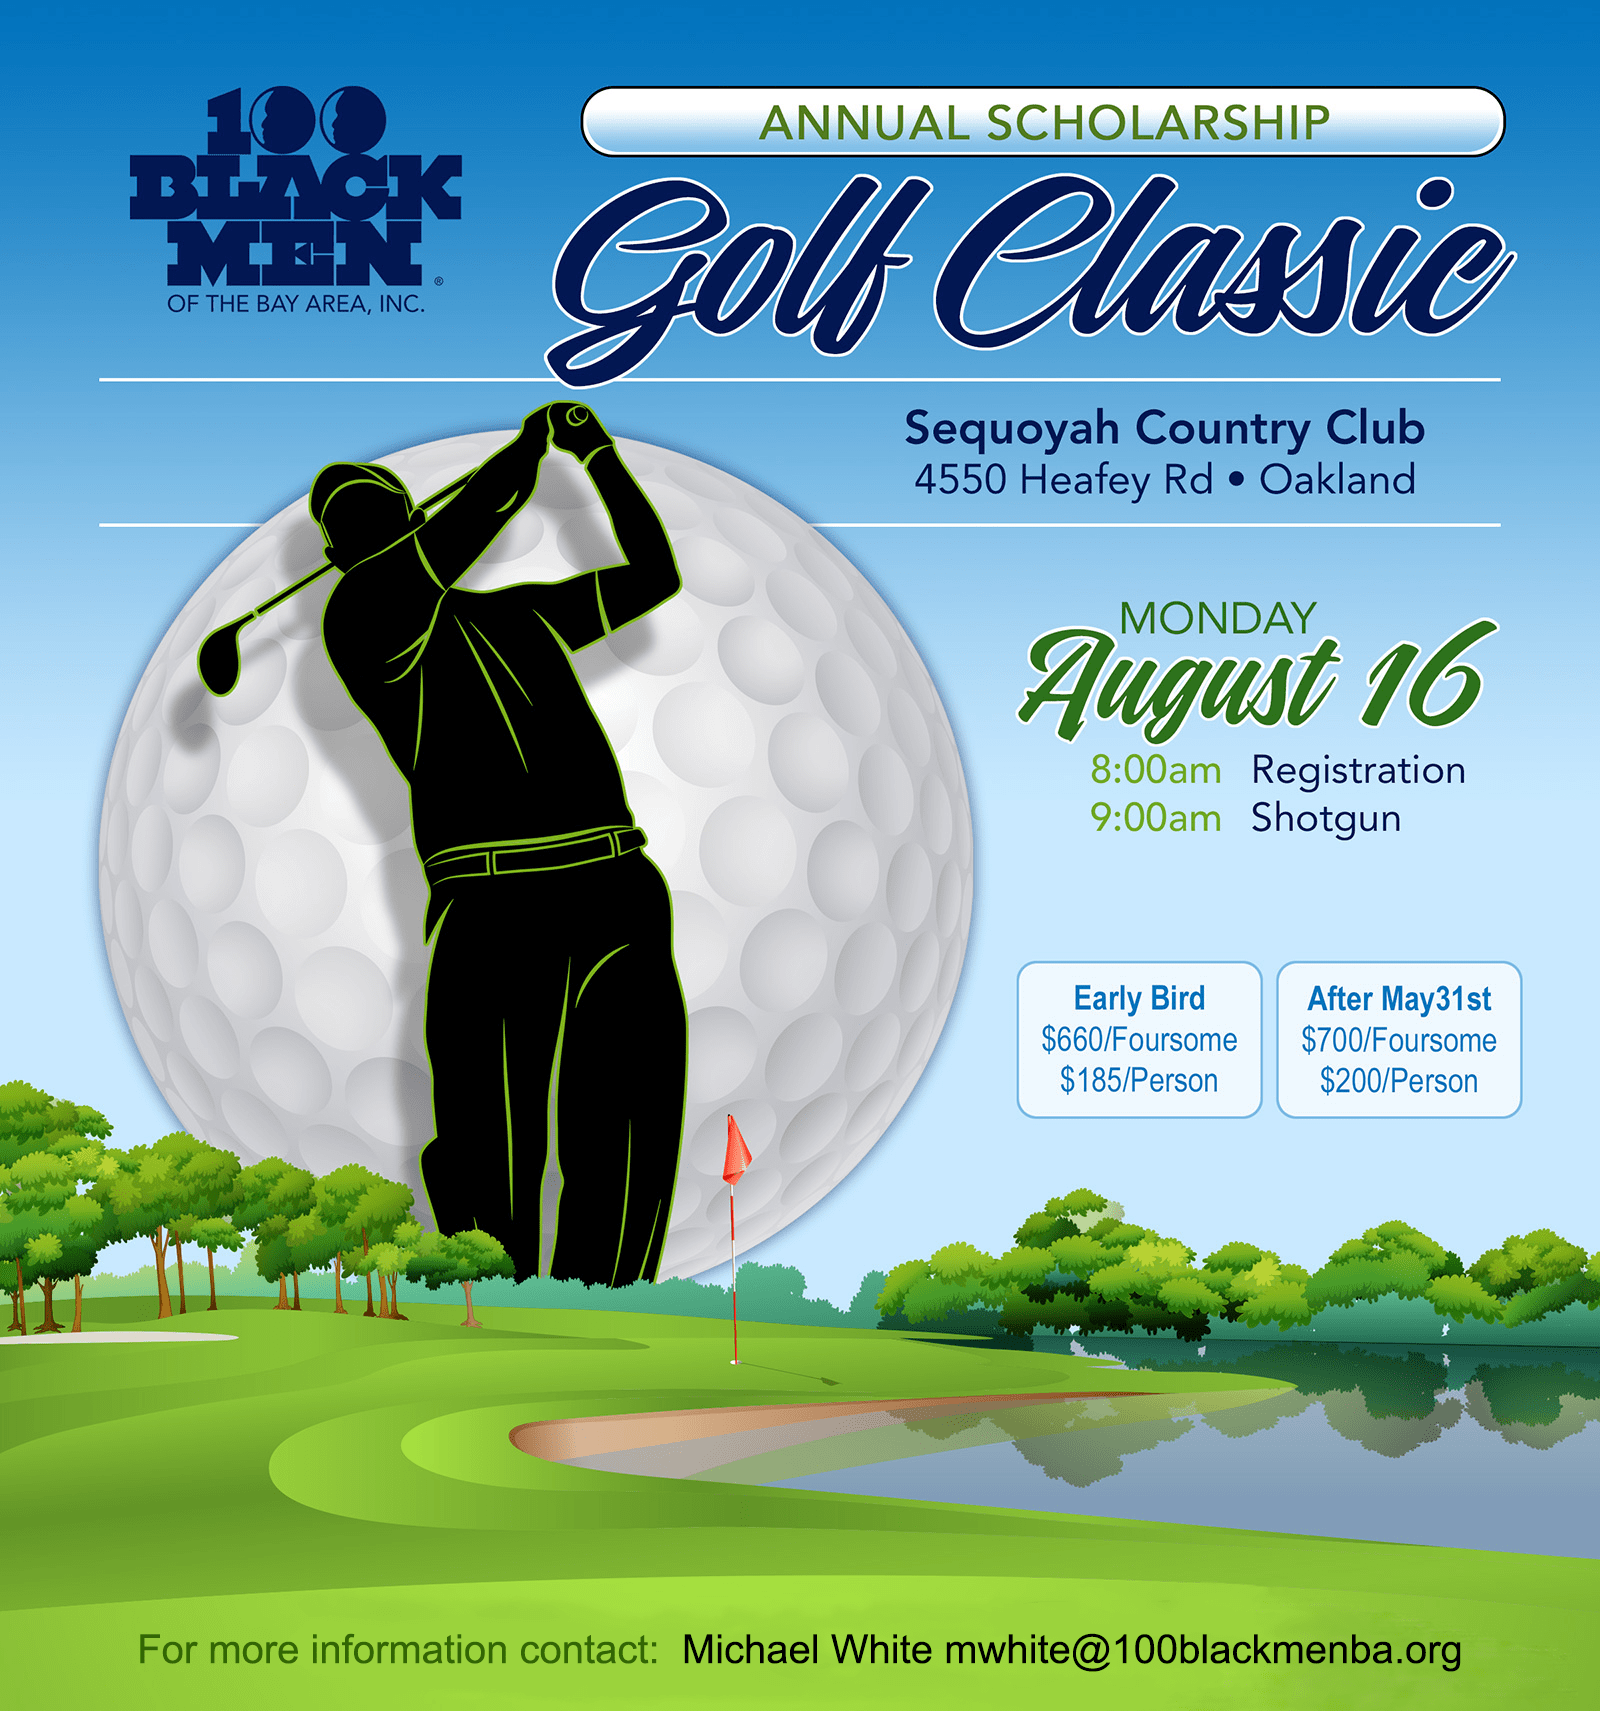 annual-scholarship-golf-classic